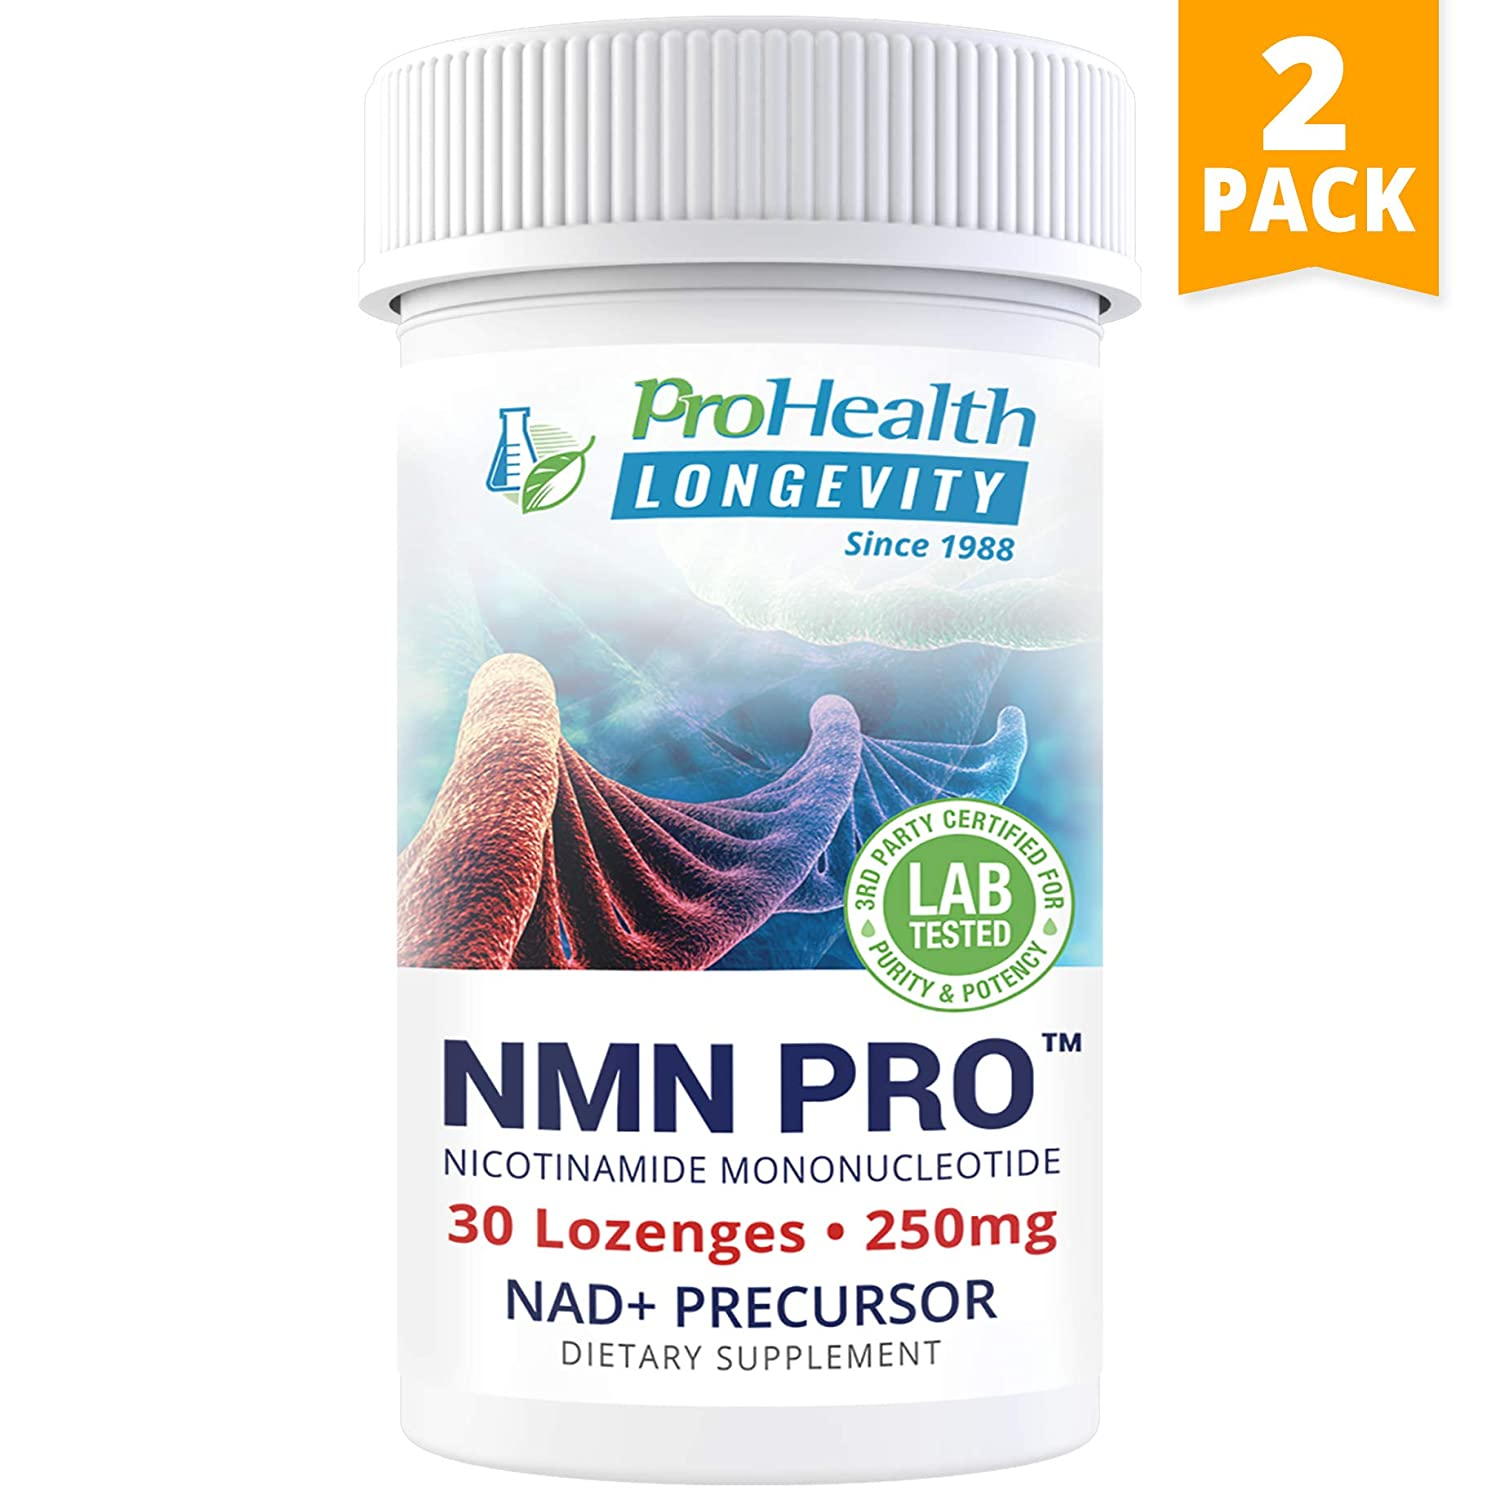 ProHealth NMN Pro 2-Pack (250 mg, 30 lozenges Each) Nicotinamide Mononucleotide | NAD+ Precursor | Supports Anti-Aging, Longevity and Energy | Non-GMO